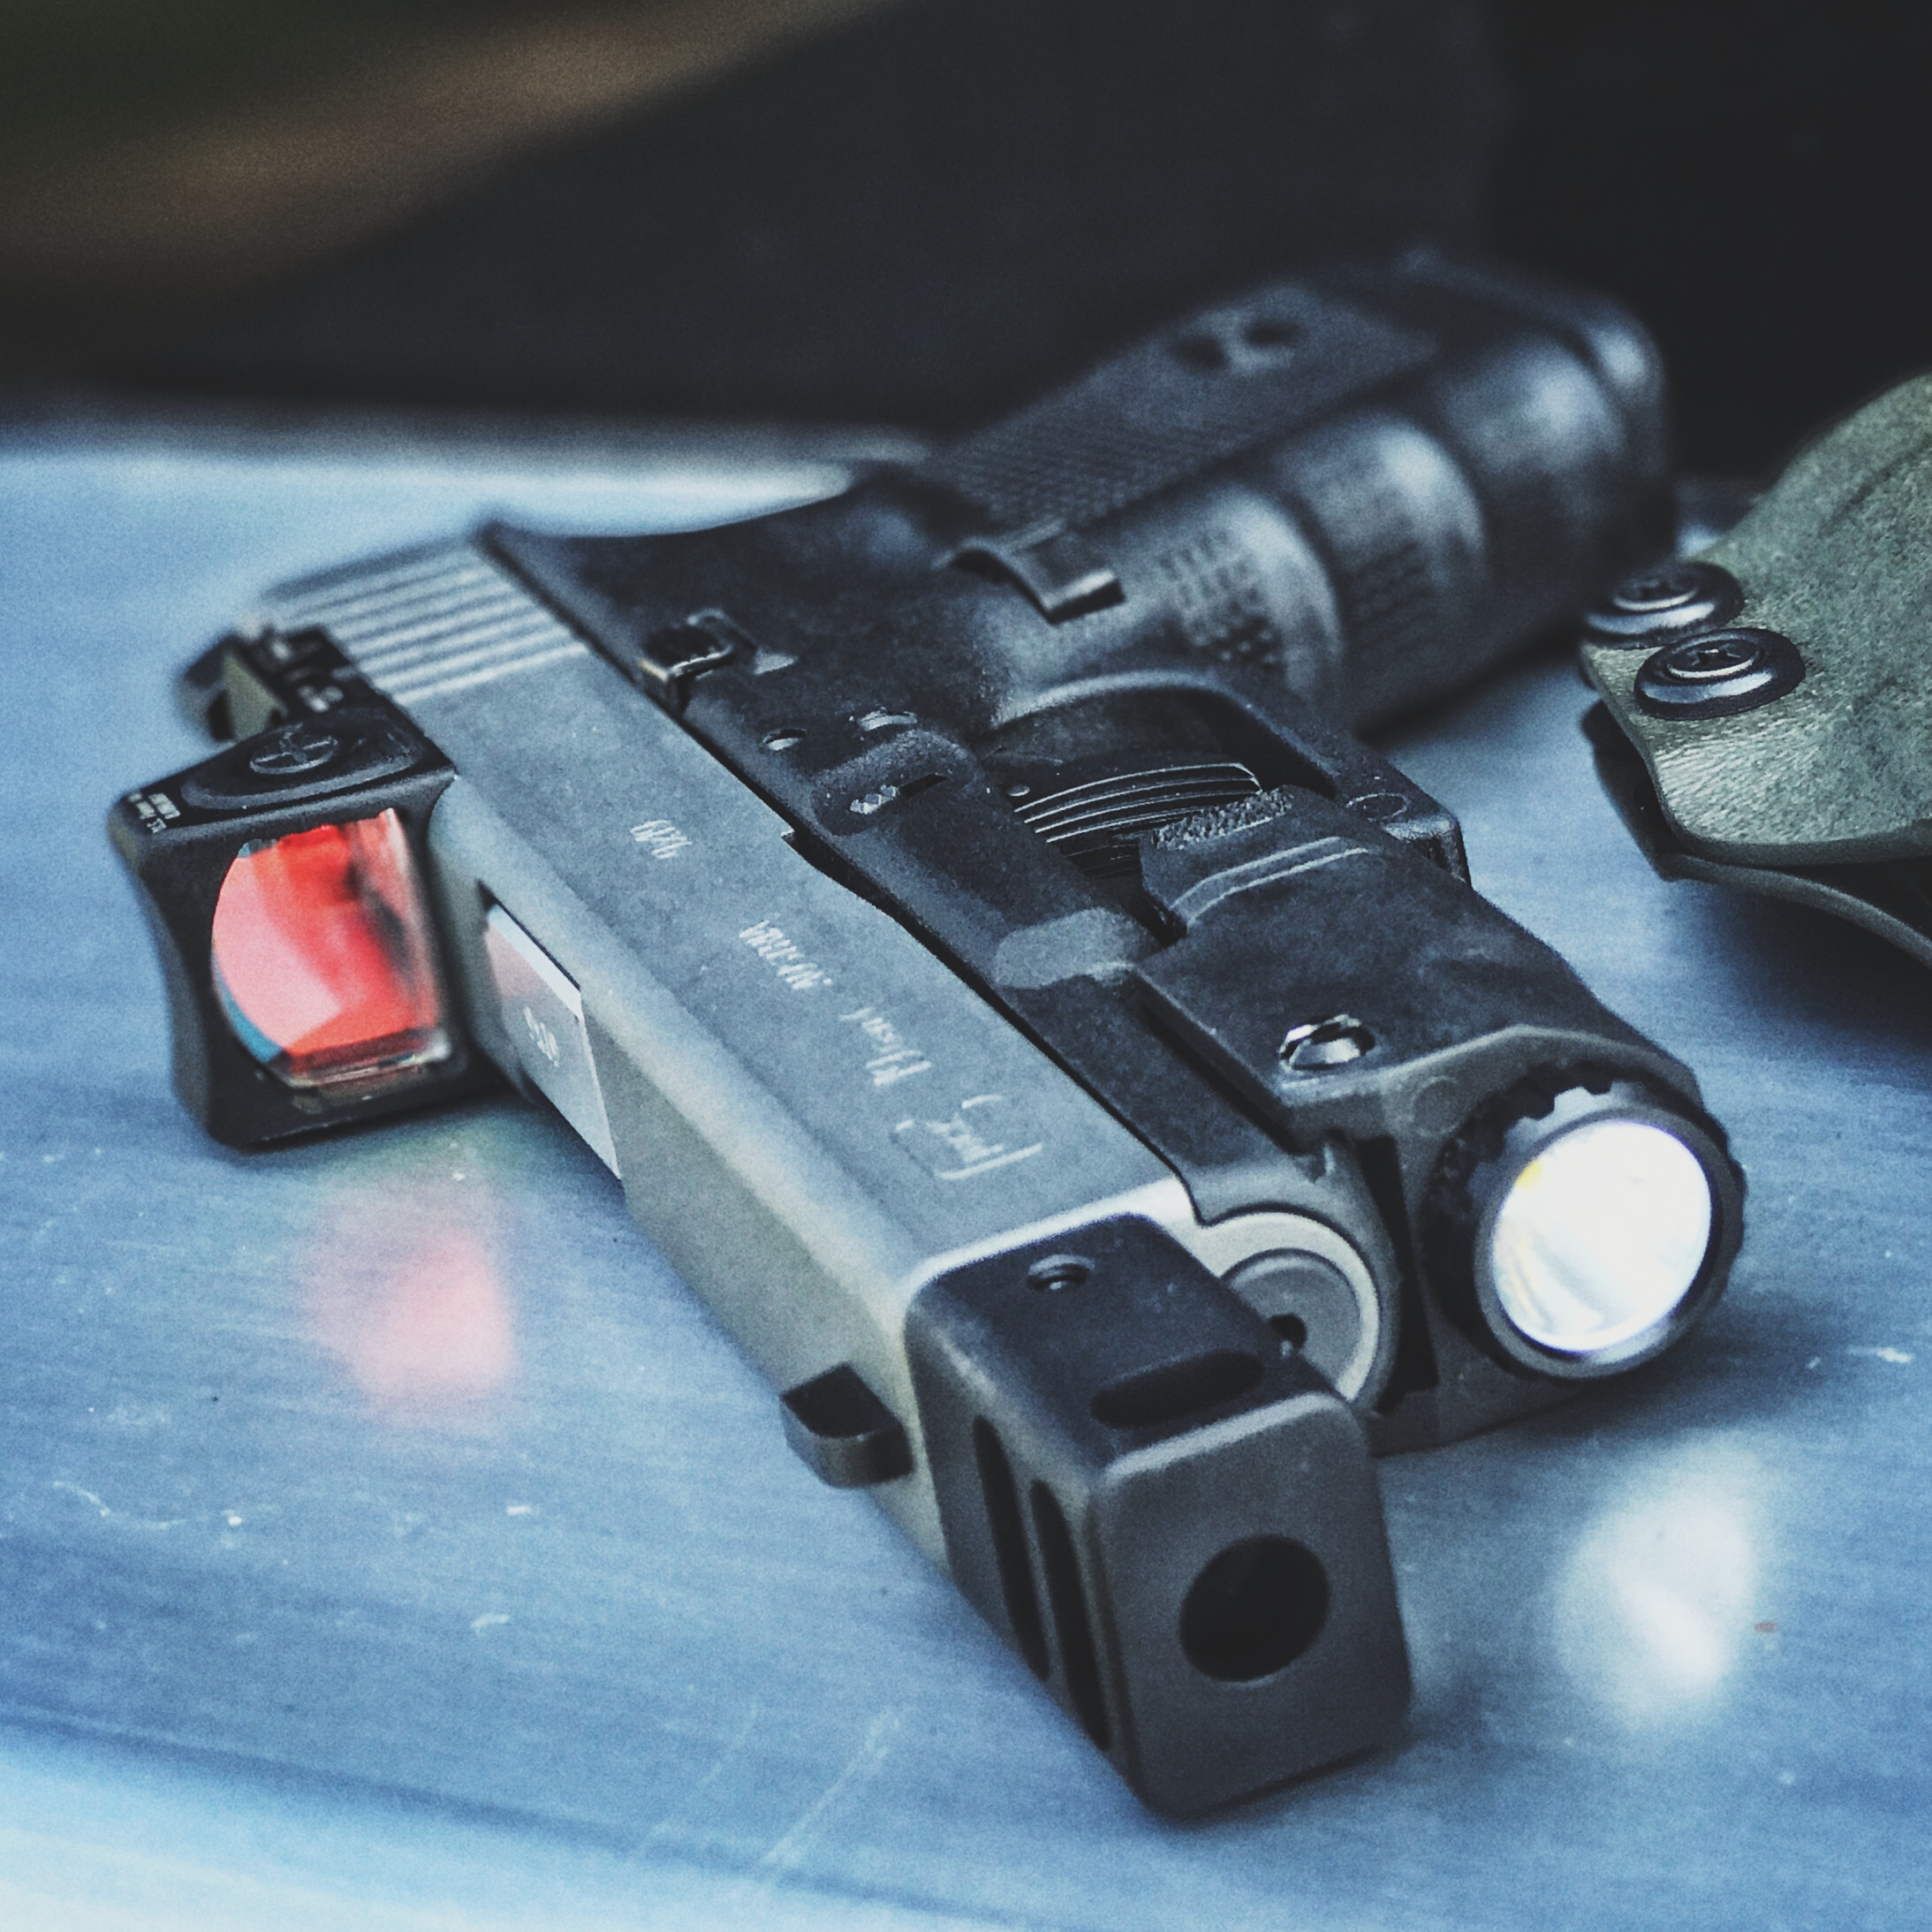 Glock 19 with Trijicon RMR and APLc